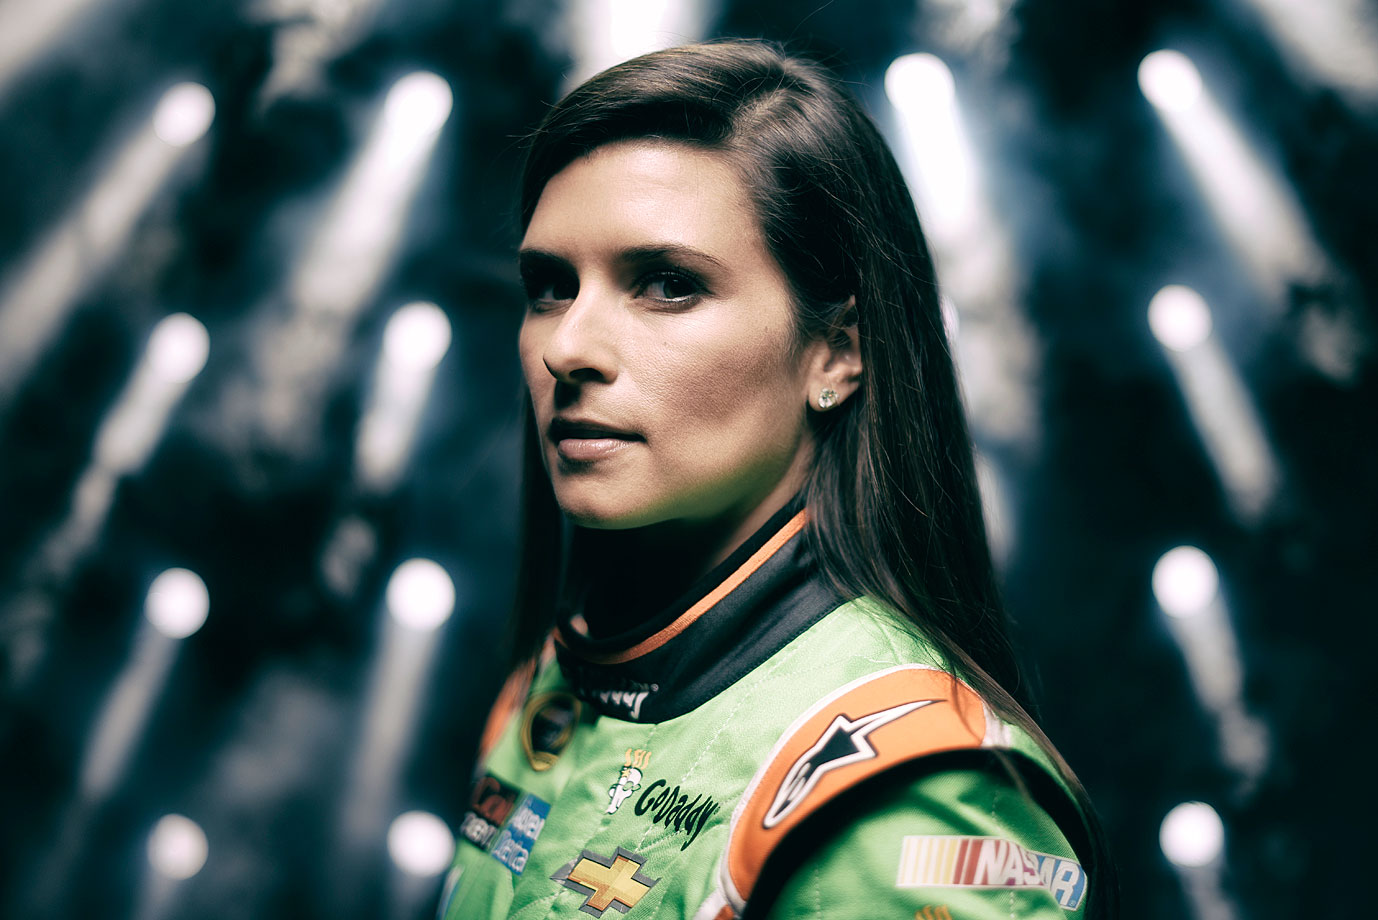 Danica Patrick is the most successful woman in the history of American open-wheel racing—her win in the 2008 Indy Japan 300 is the only women's victory in an IndyCar Series race and her third place in the 2009 Indianapolis 500 the highest finish there ever by a woman. In 2013, she became the first female NASCAR driver to win a Sprint Cup Series pole, turning in the fastest qualifying lap since 1990 - qualifying for the Daytona 500.